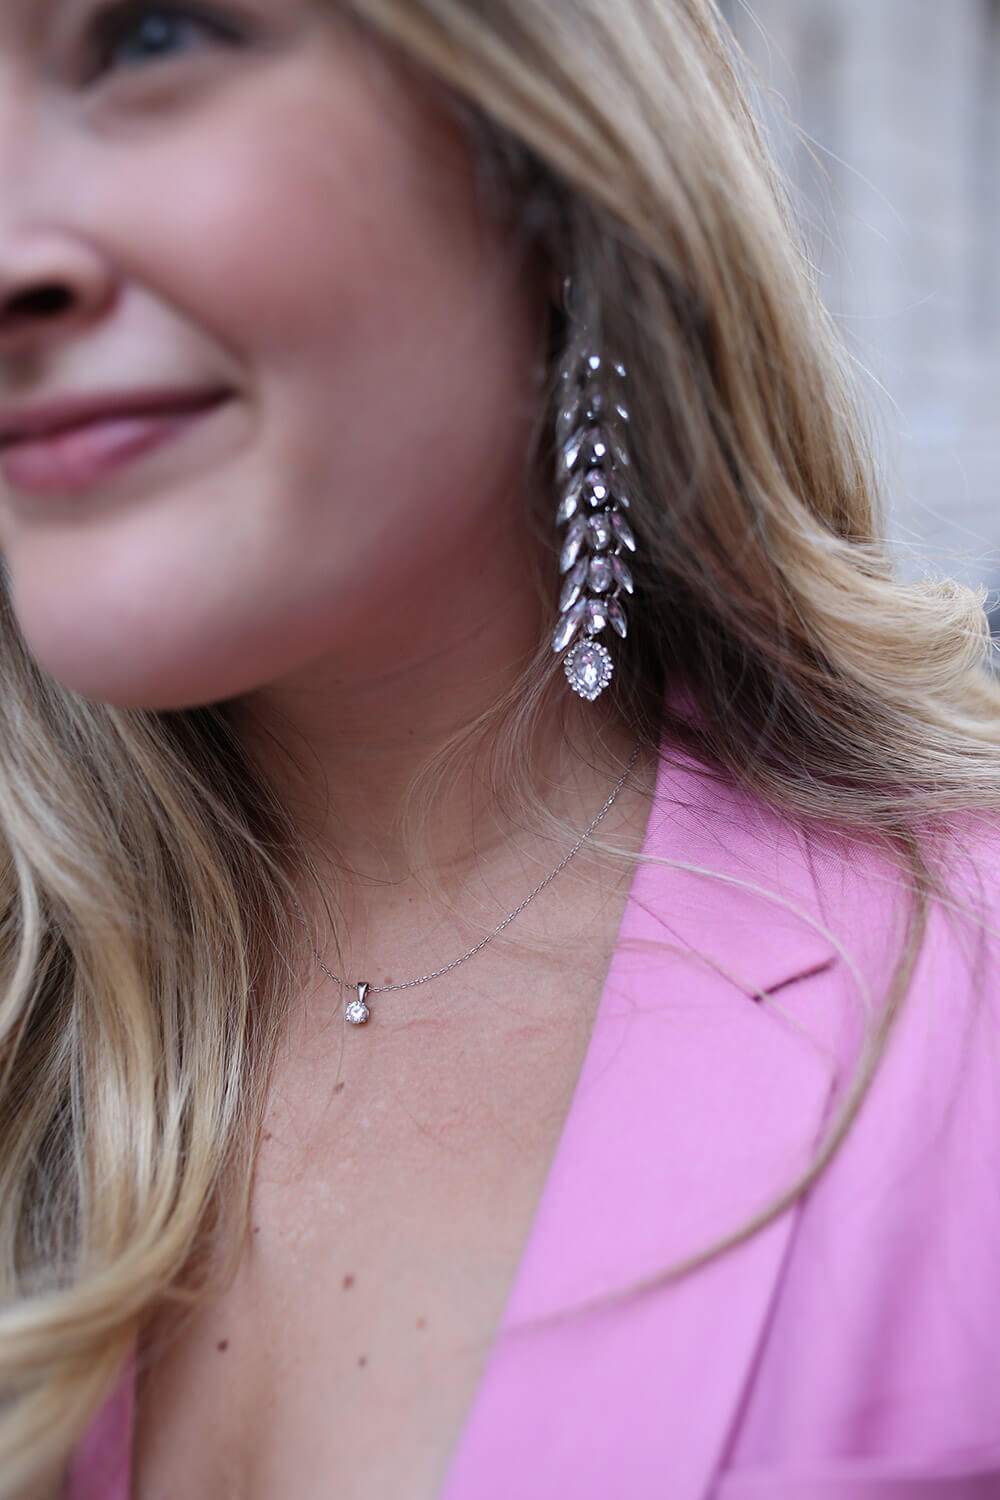 Glamorous sparkly jumpsuit from Nordstrom with polished pink blazer create exciting party outfit. For a chic night on the town this glitterly pantsuit is perfect for parties and date night. Pink blazer and glittery jumpsuit from Nordstrom. Glamorous winter outfit inspiration from Nordstrom